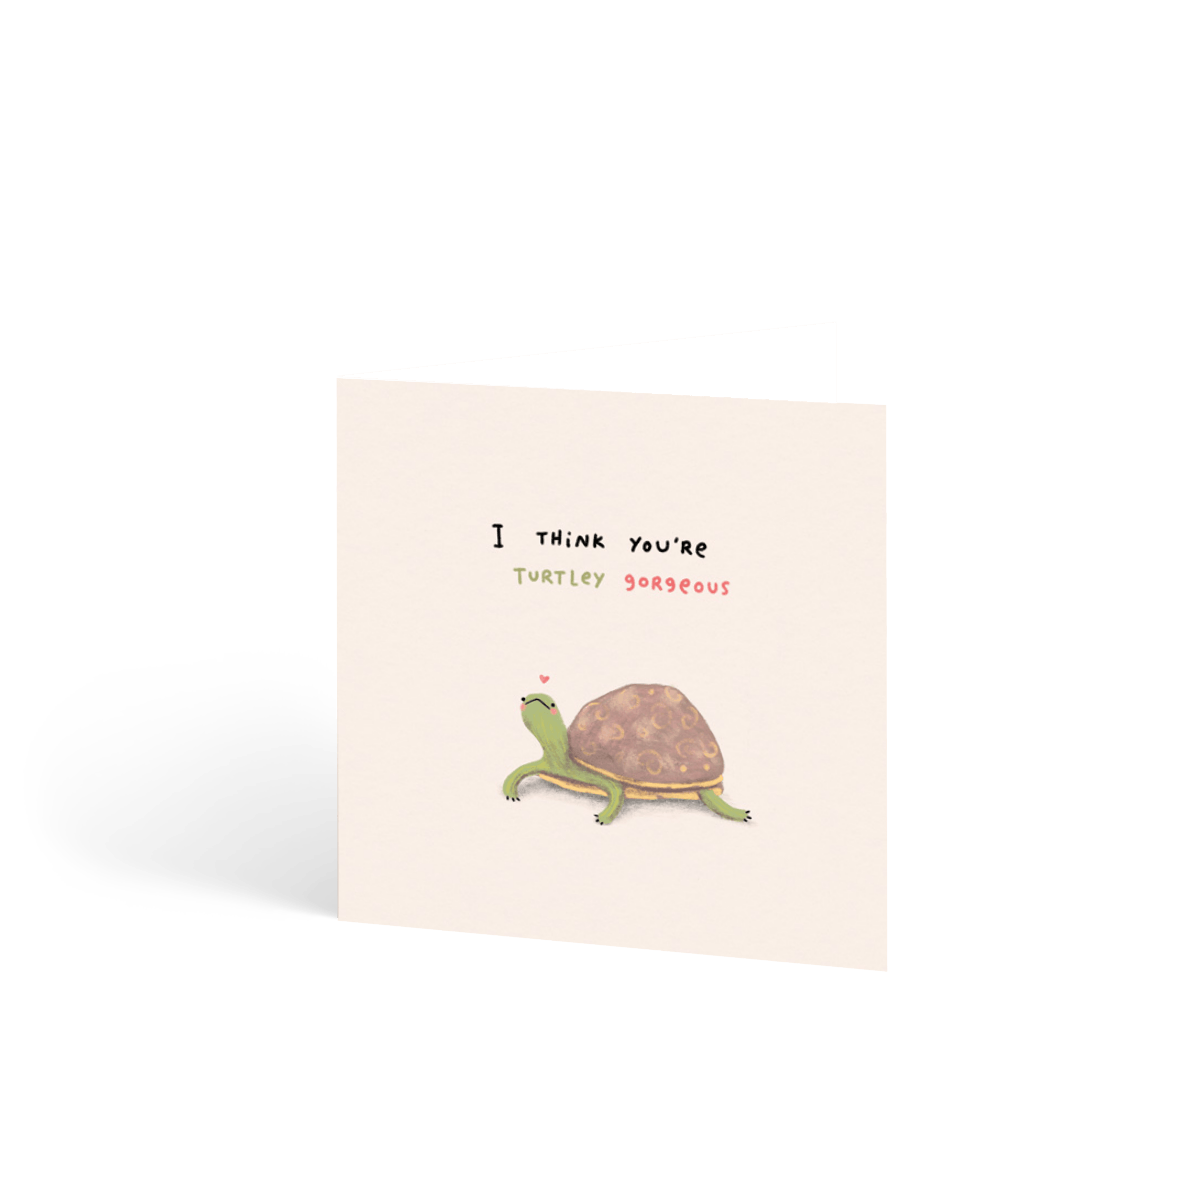 Https%3a%2f%2fwww.papier.com%2fproduct image%2f37105%2f16%2fturtley gorgeous 9335 front 1525367216.png?ixlib=rb 1.1